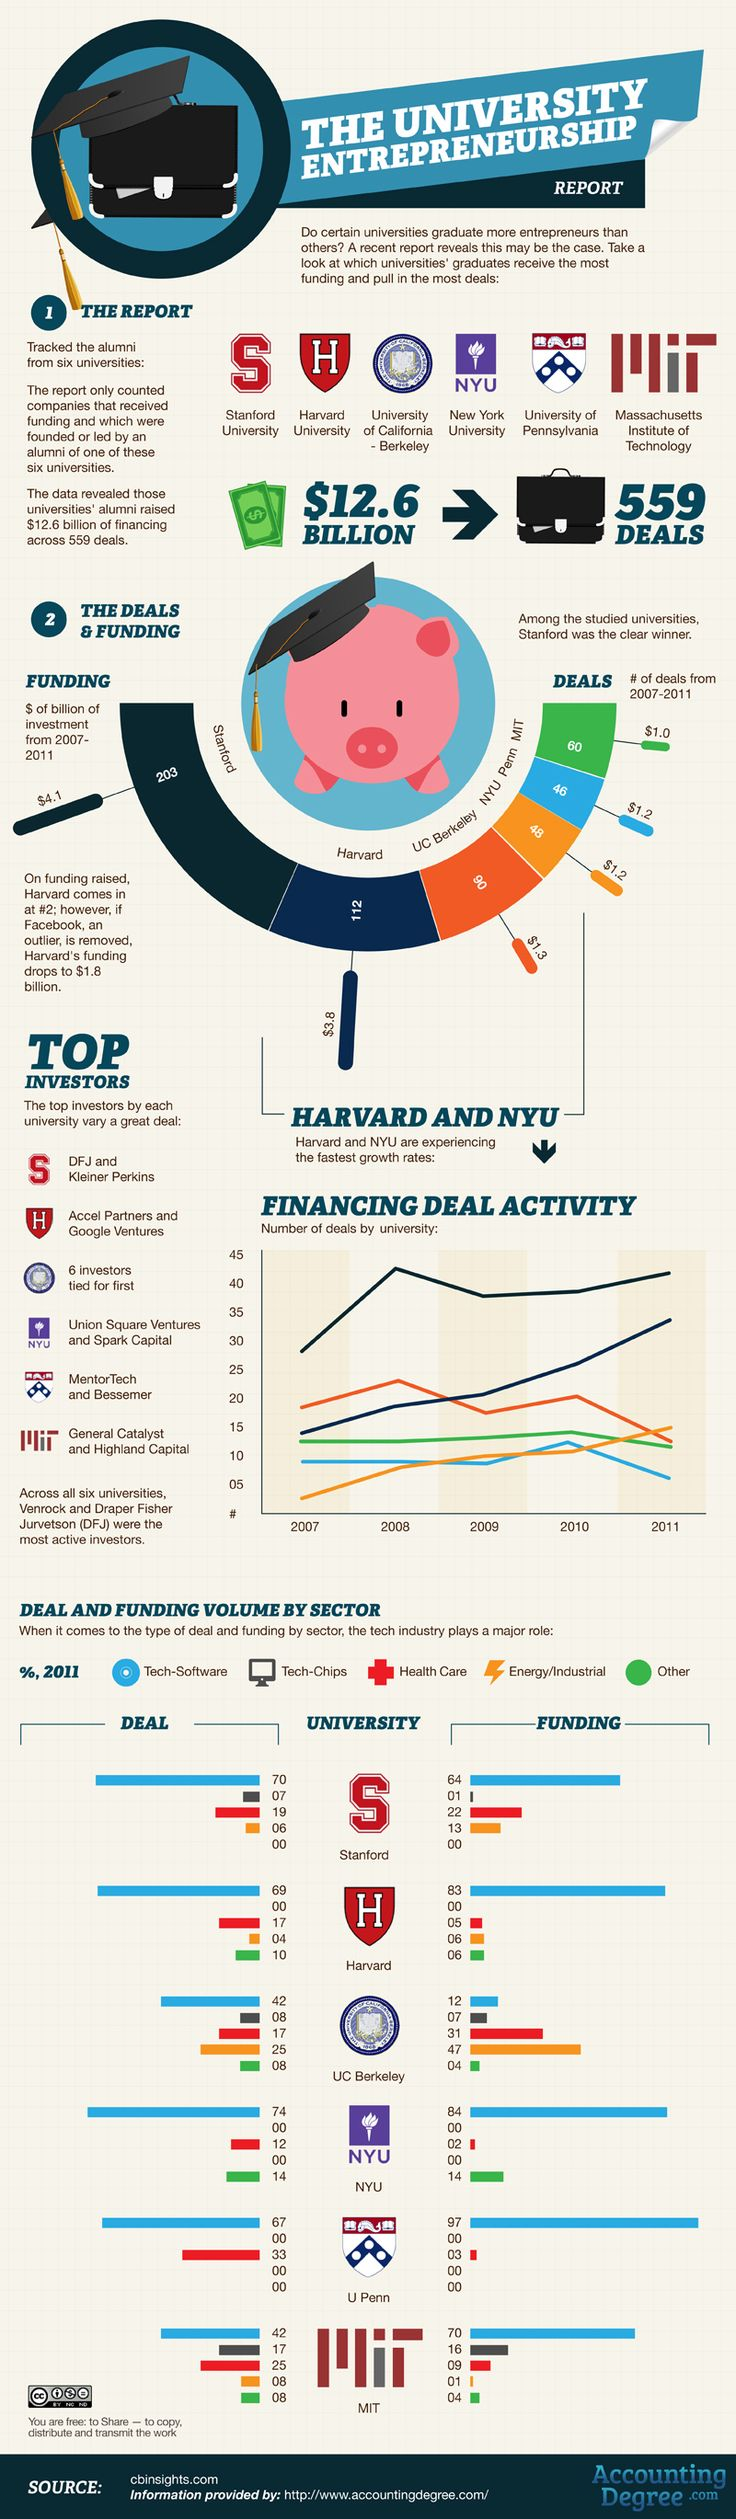 The University Entrepreneurship Report: which US university's students get the most funding? #infographic